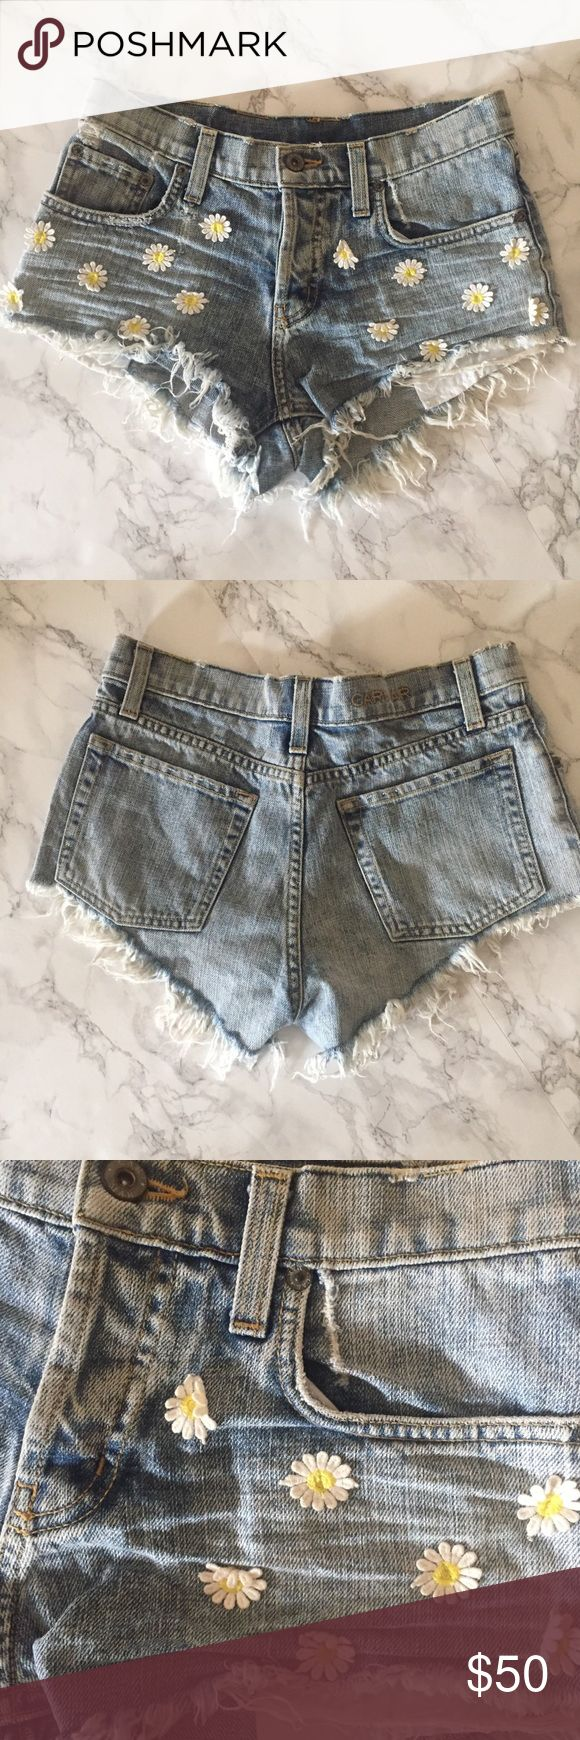 LF Carmar daisy shorts Super cute daisy denim shorts in perfect condition only worn once for a couple of hours Carmar Shorts Jean Shorts